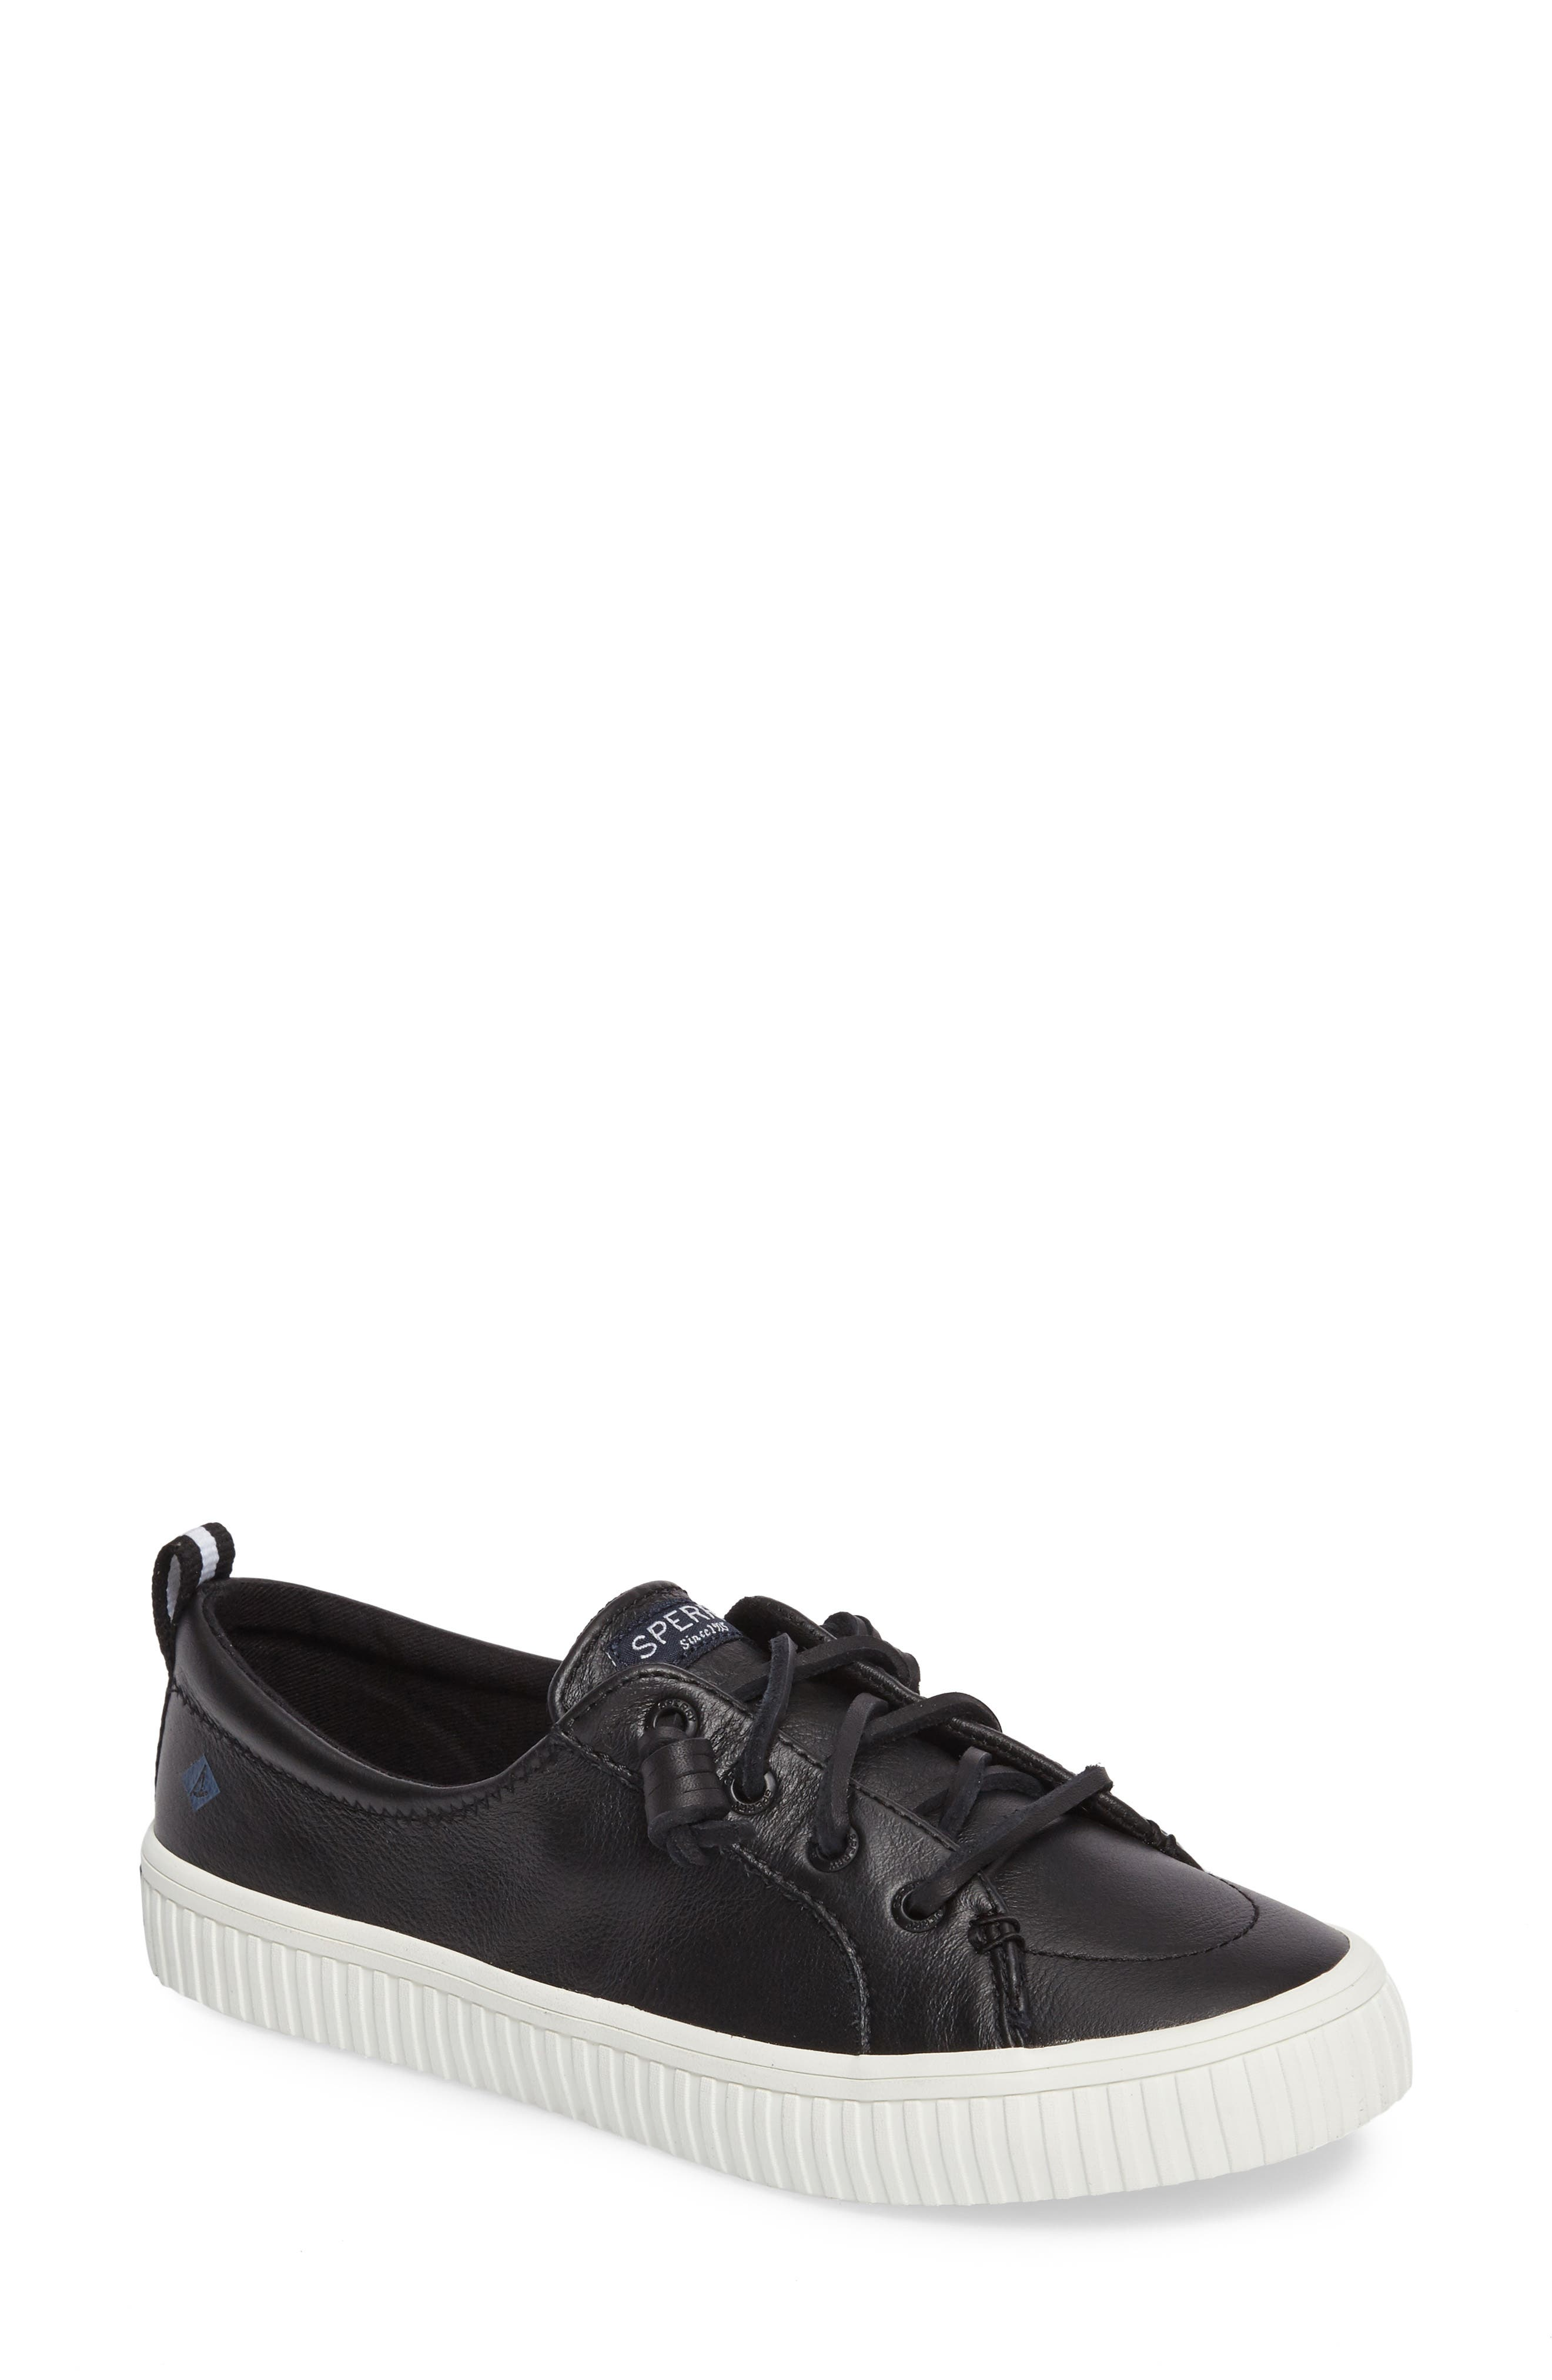 Main Image - Sperry Crest Vibe Creeper Sneaker (Women)